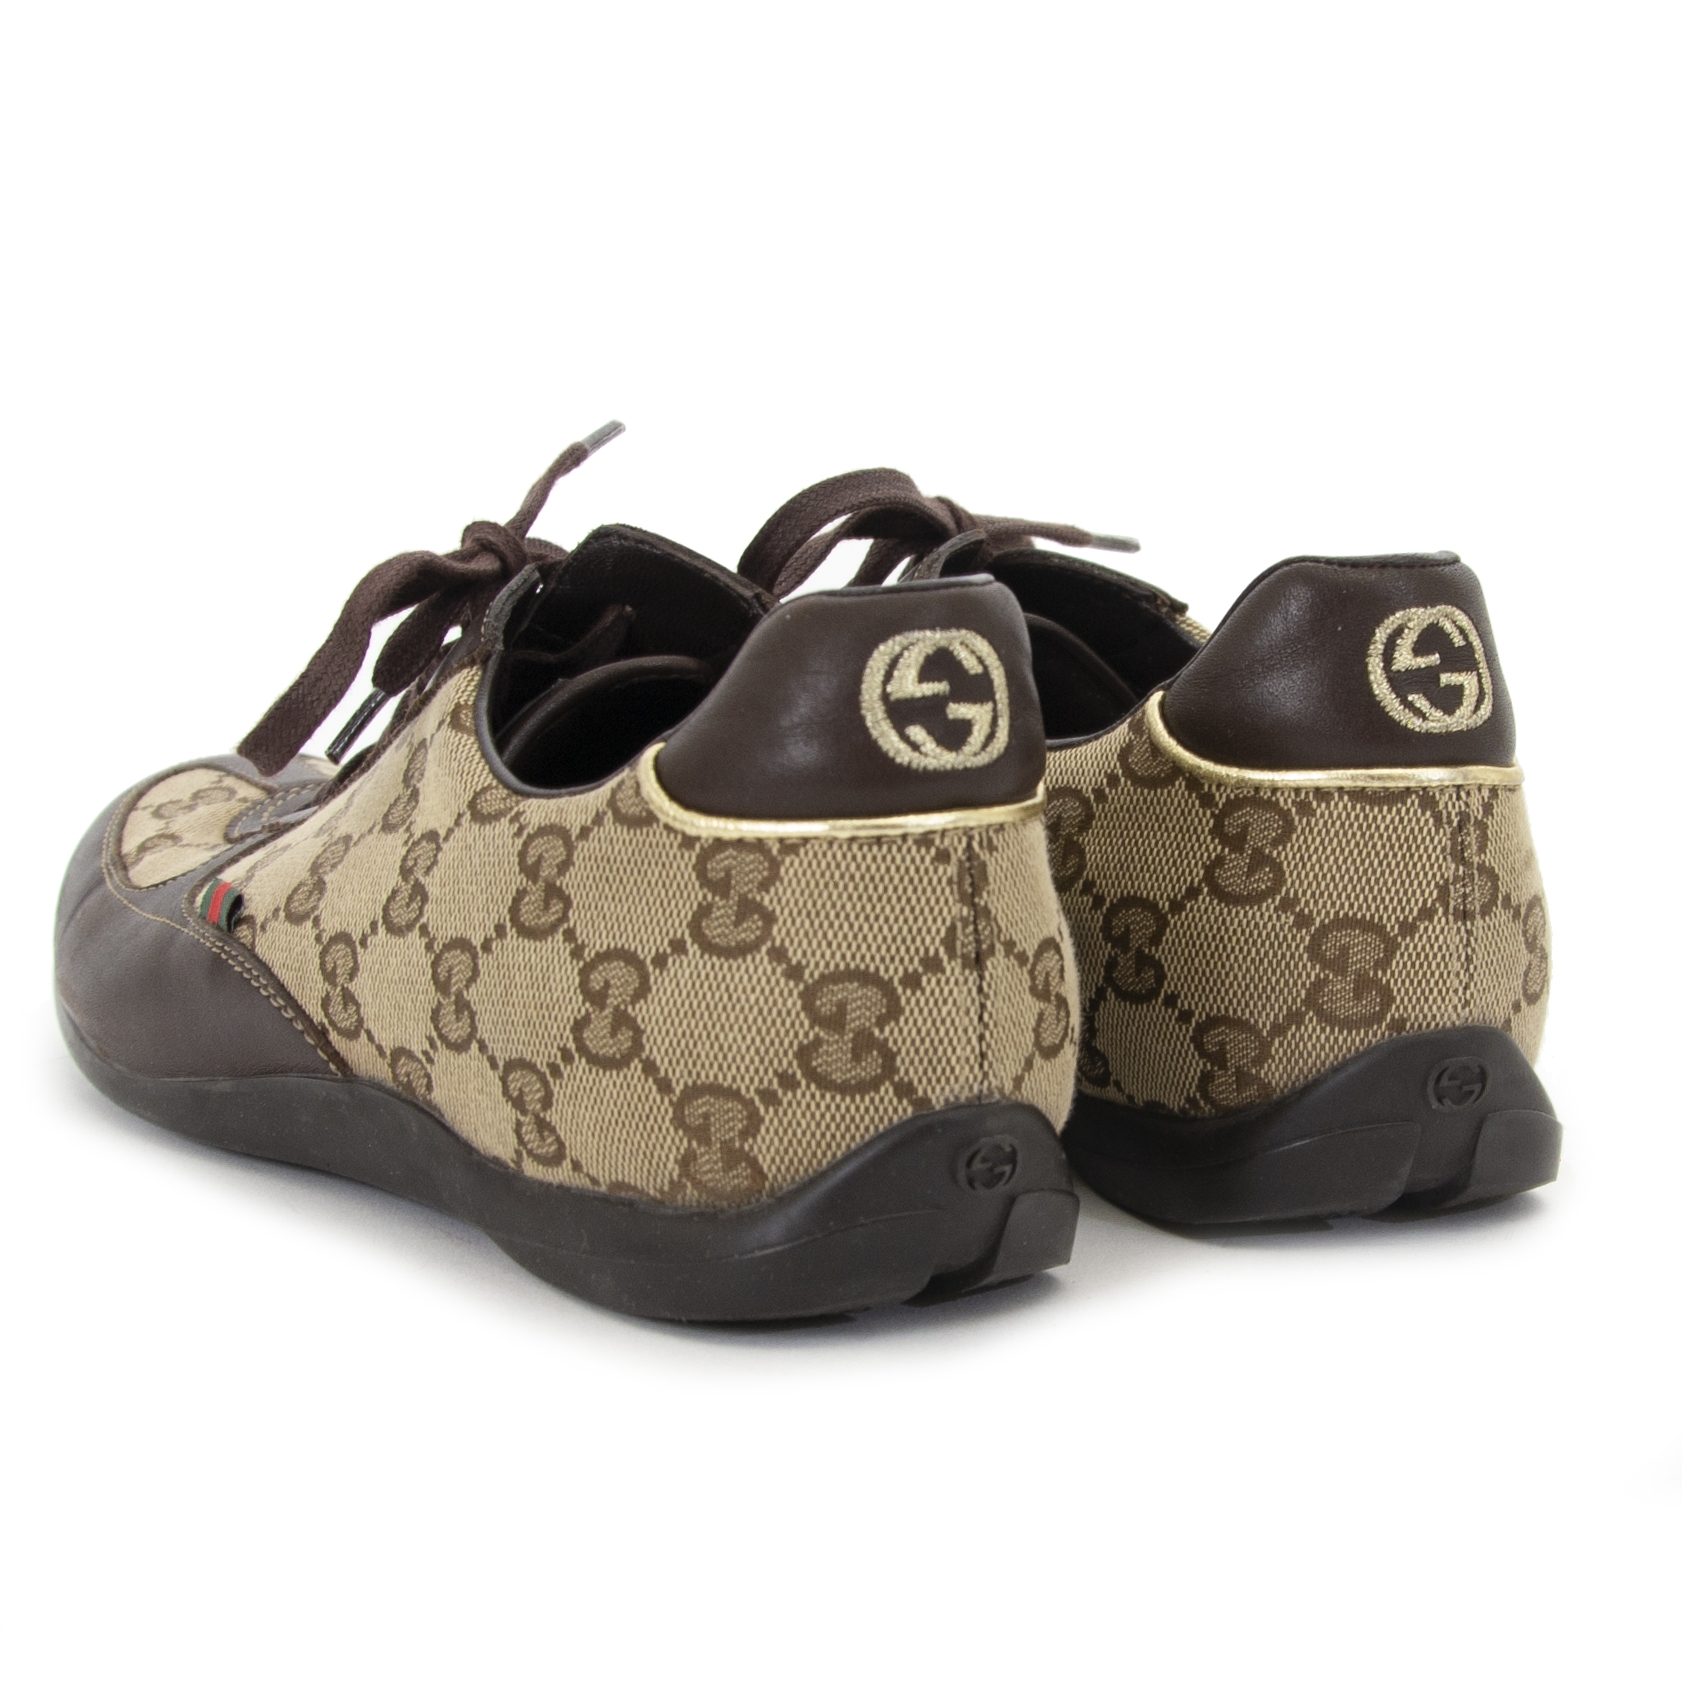 873ea07c9d45 ... Gucci Grand Prix GG Beige Ebony Sneakers now for sale at labellov  vintage fashion webshop belgium